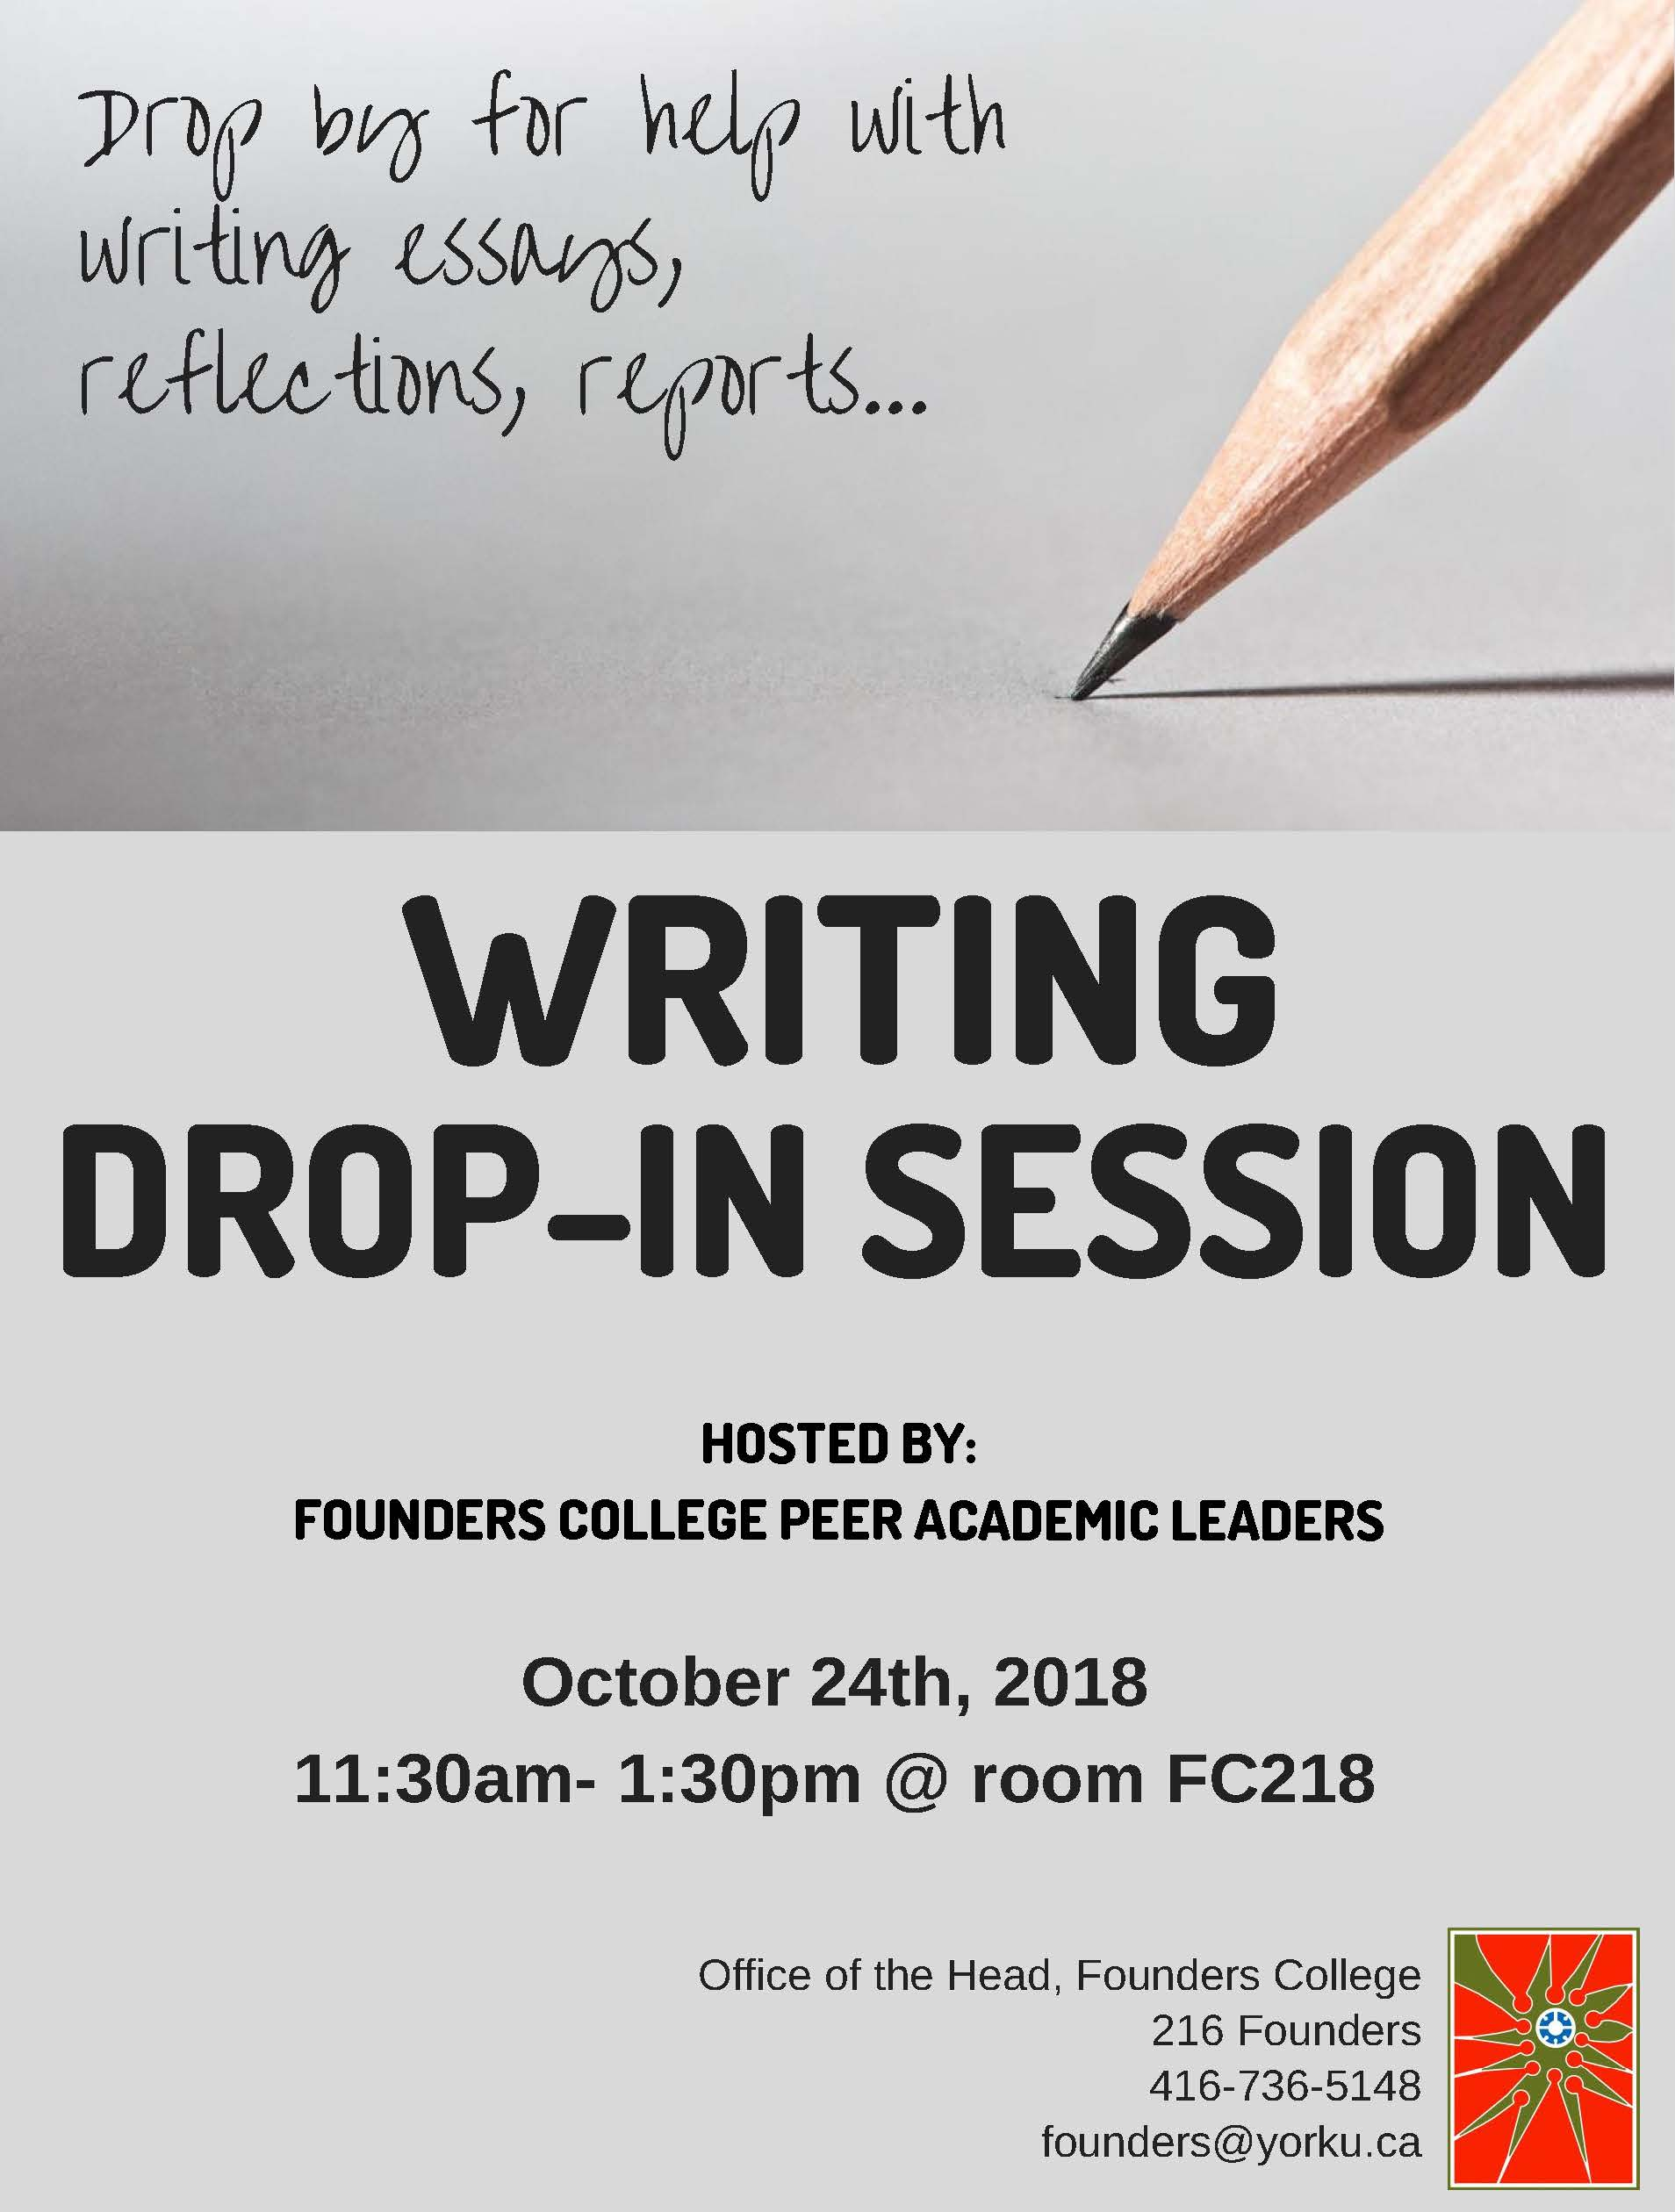 WRITING DROP-IN - Khadeja